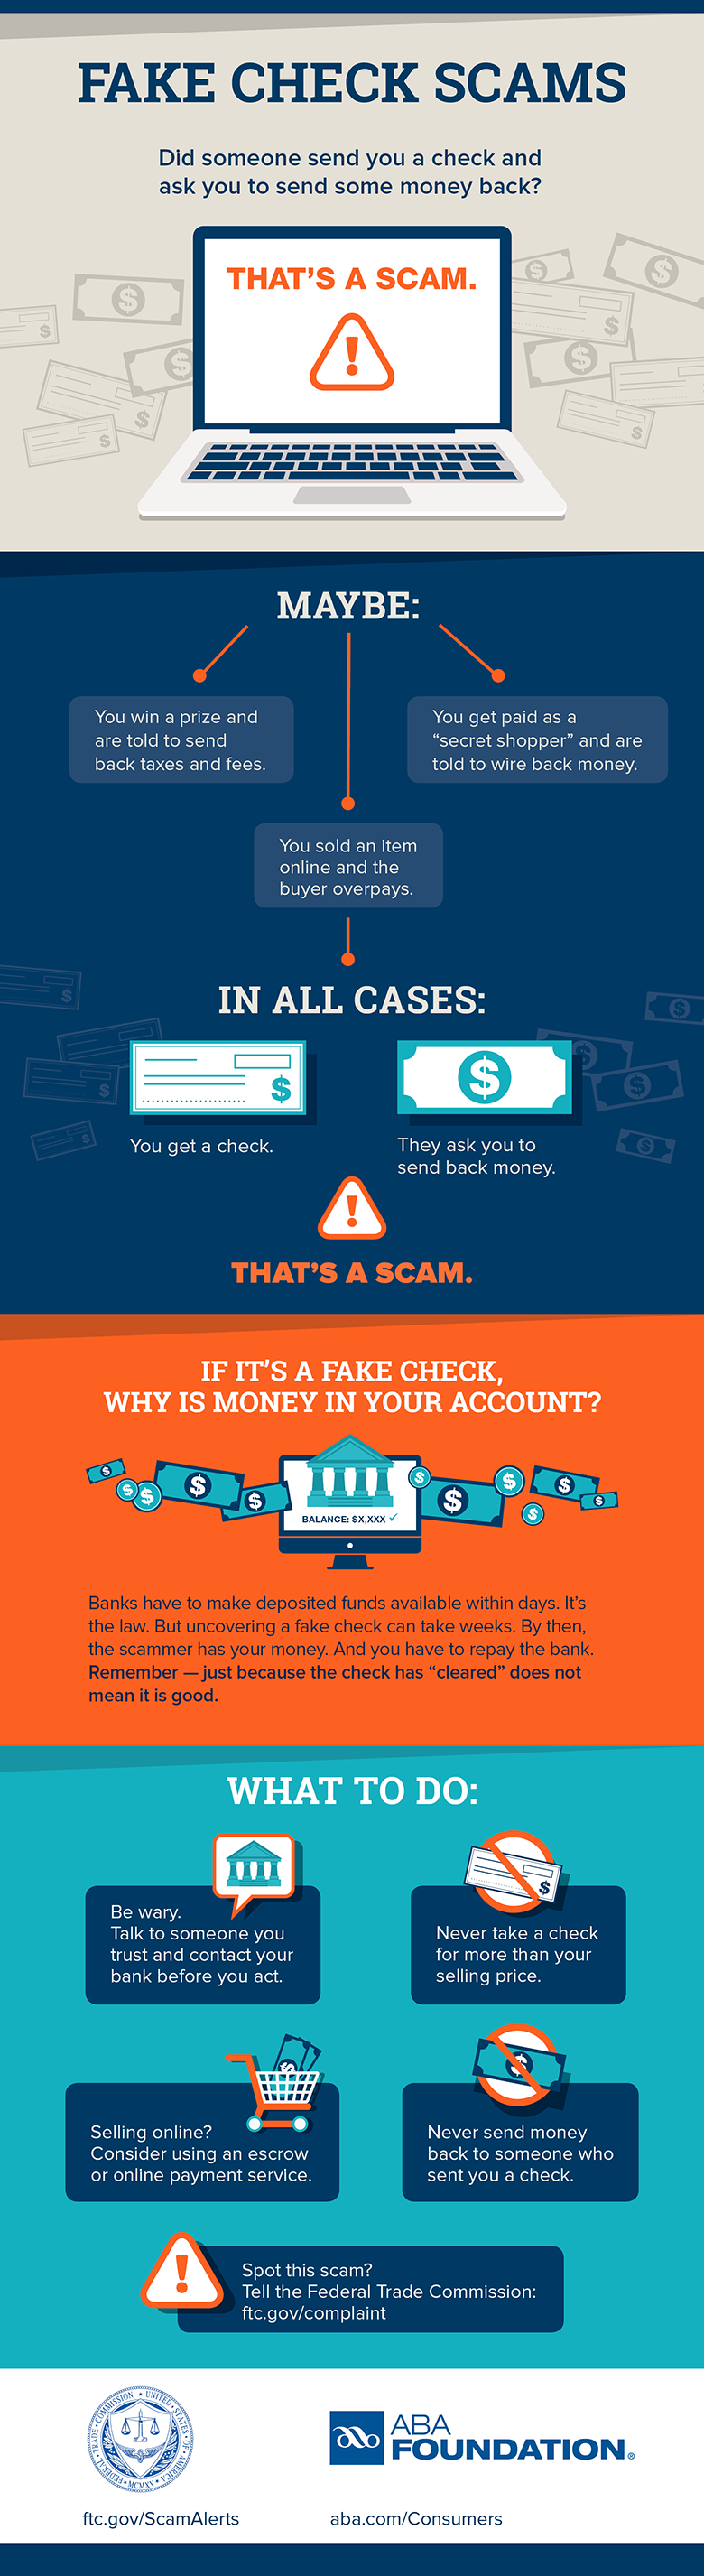 Anatomy Of A Fake Check Scam Page 2 Ftc Consumer Information